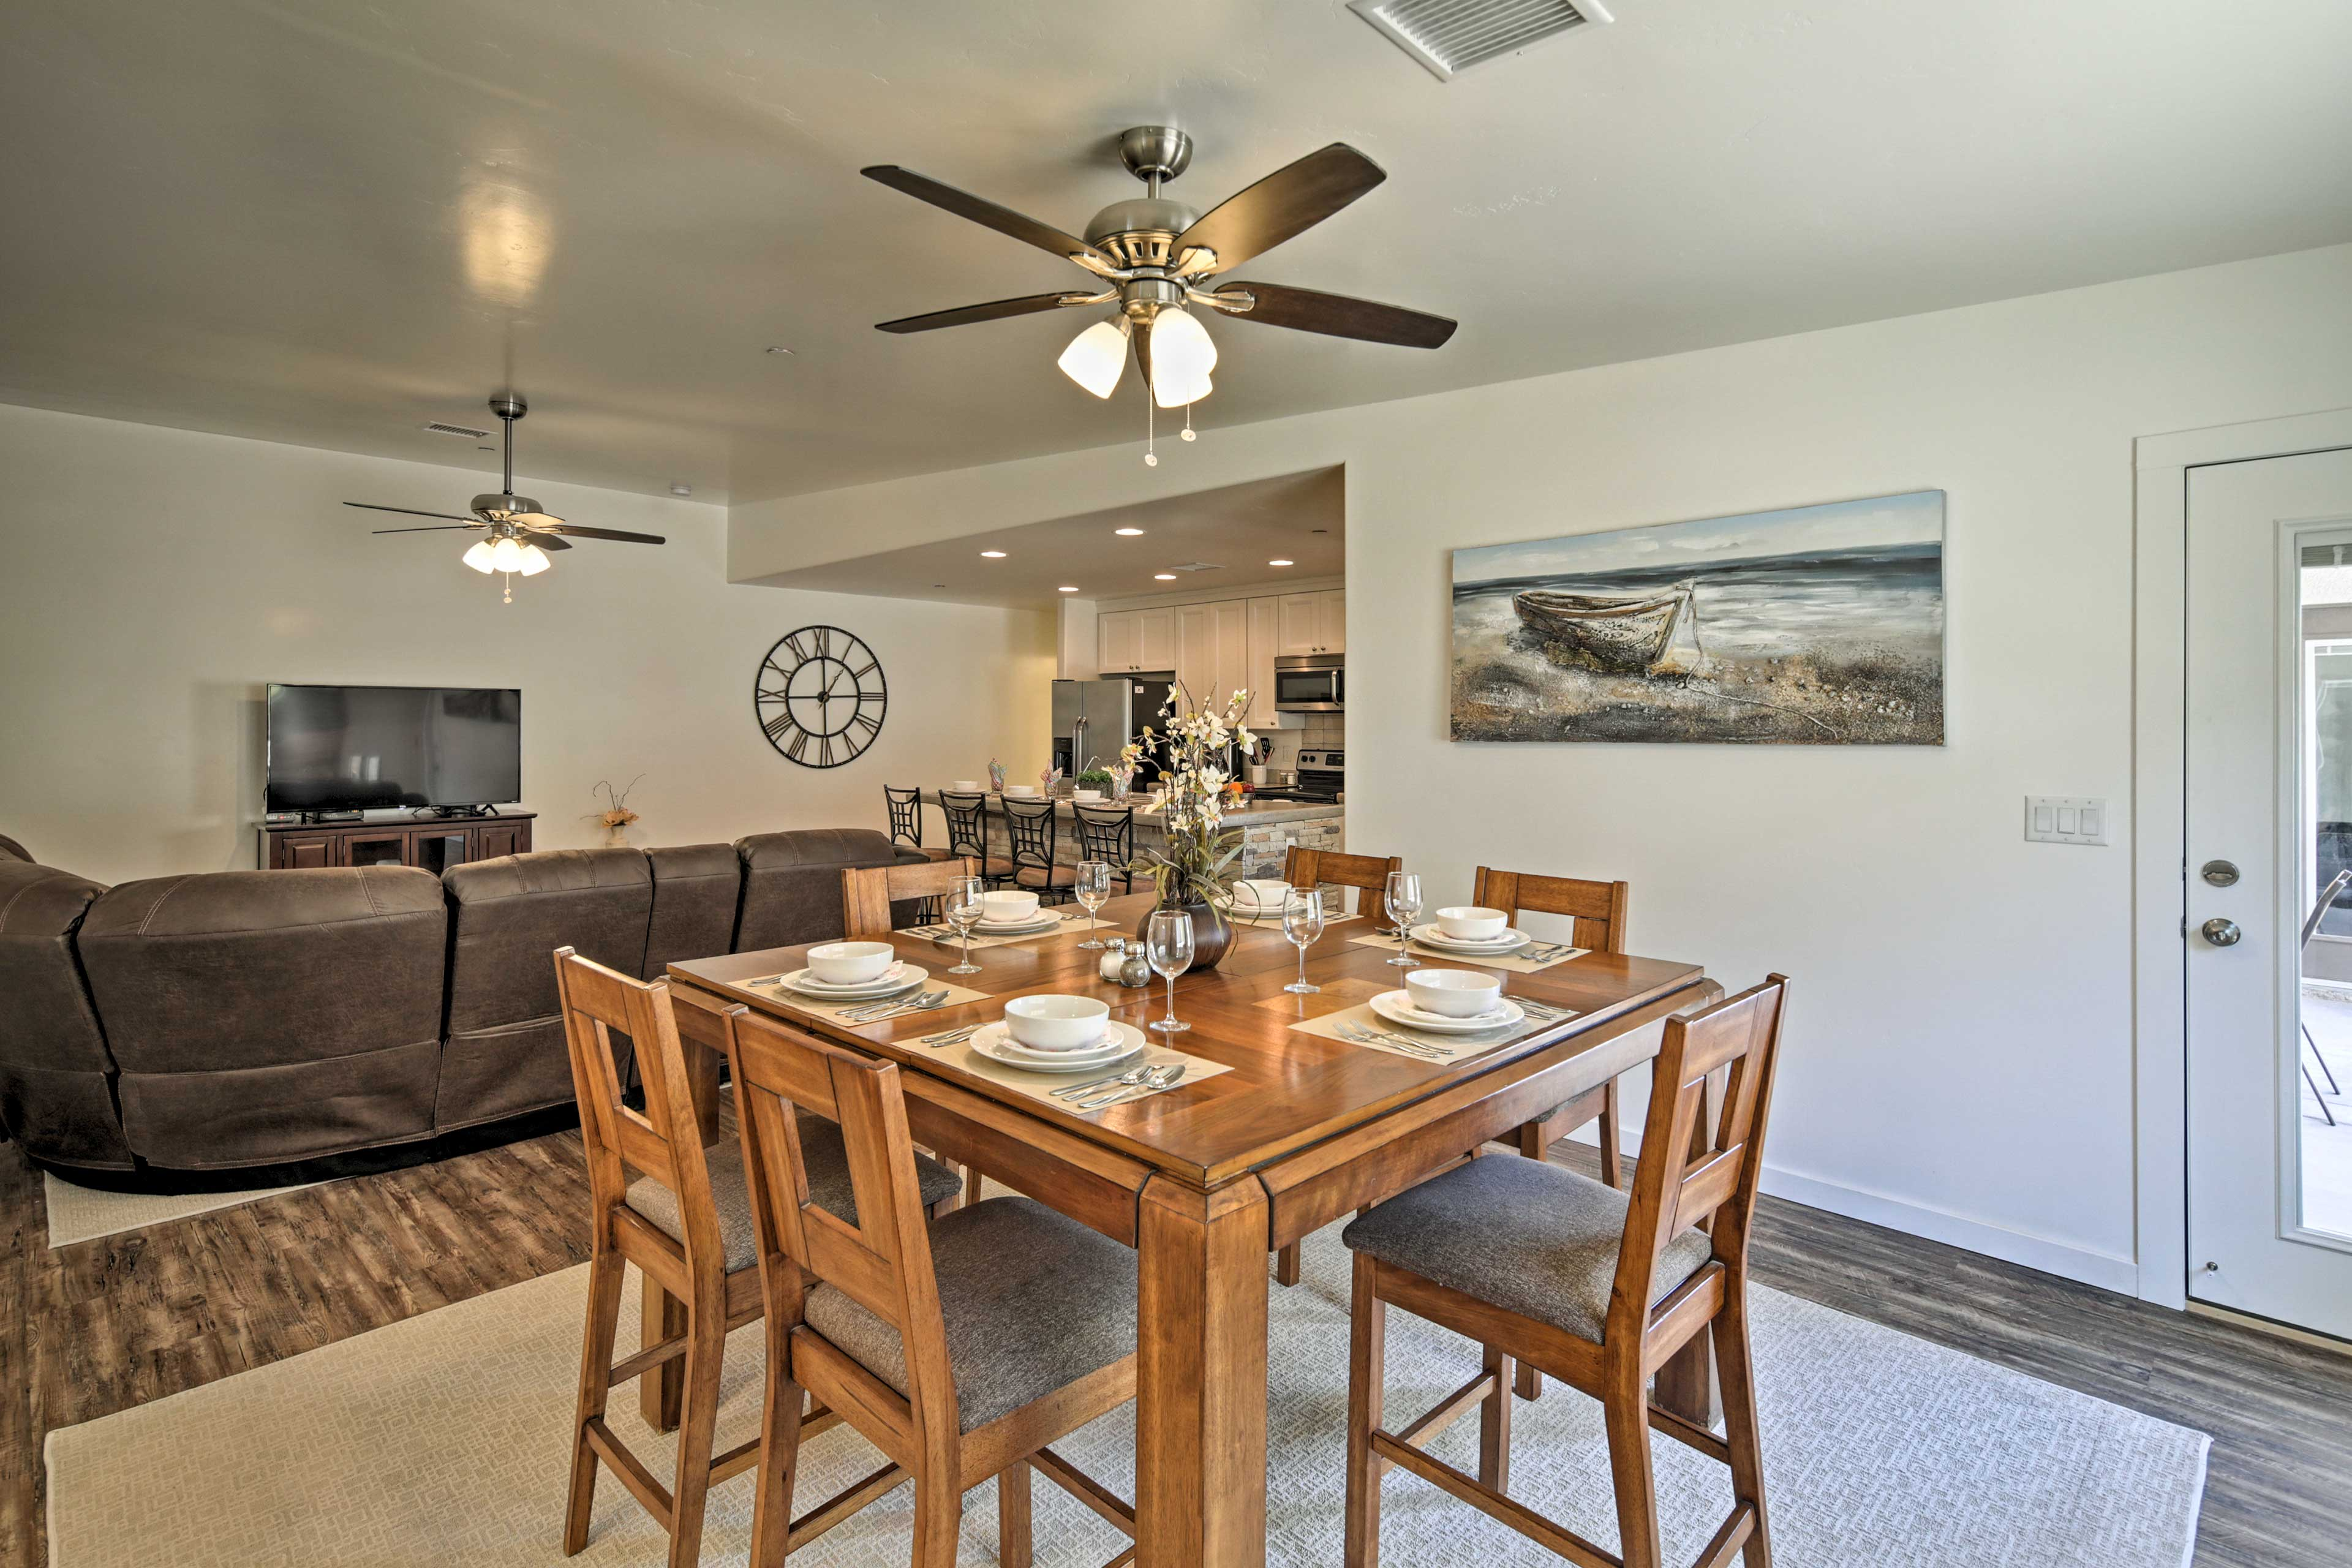 Connect with fellow guests over a home-cooked meal.